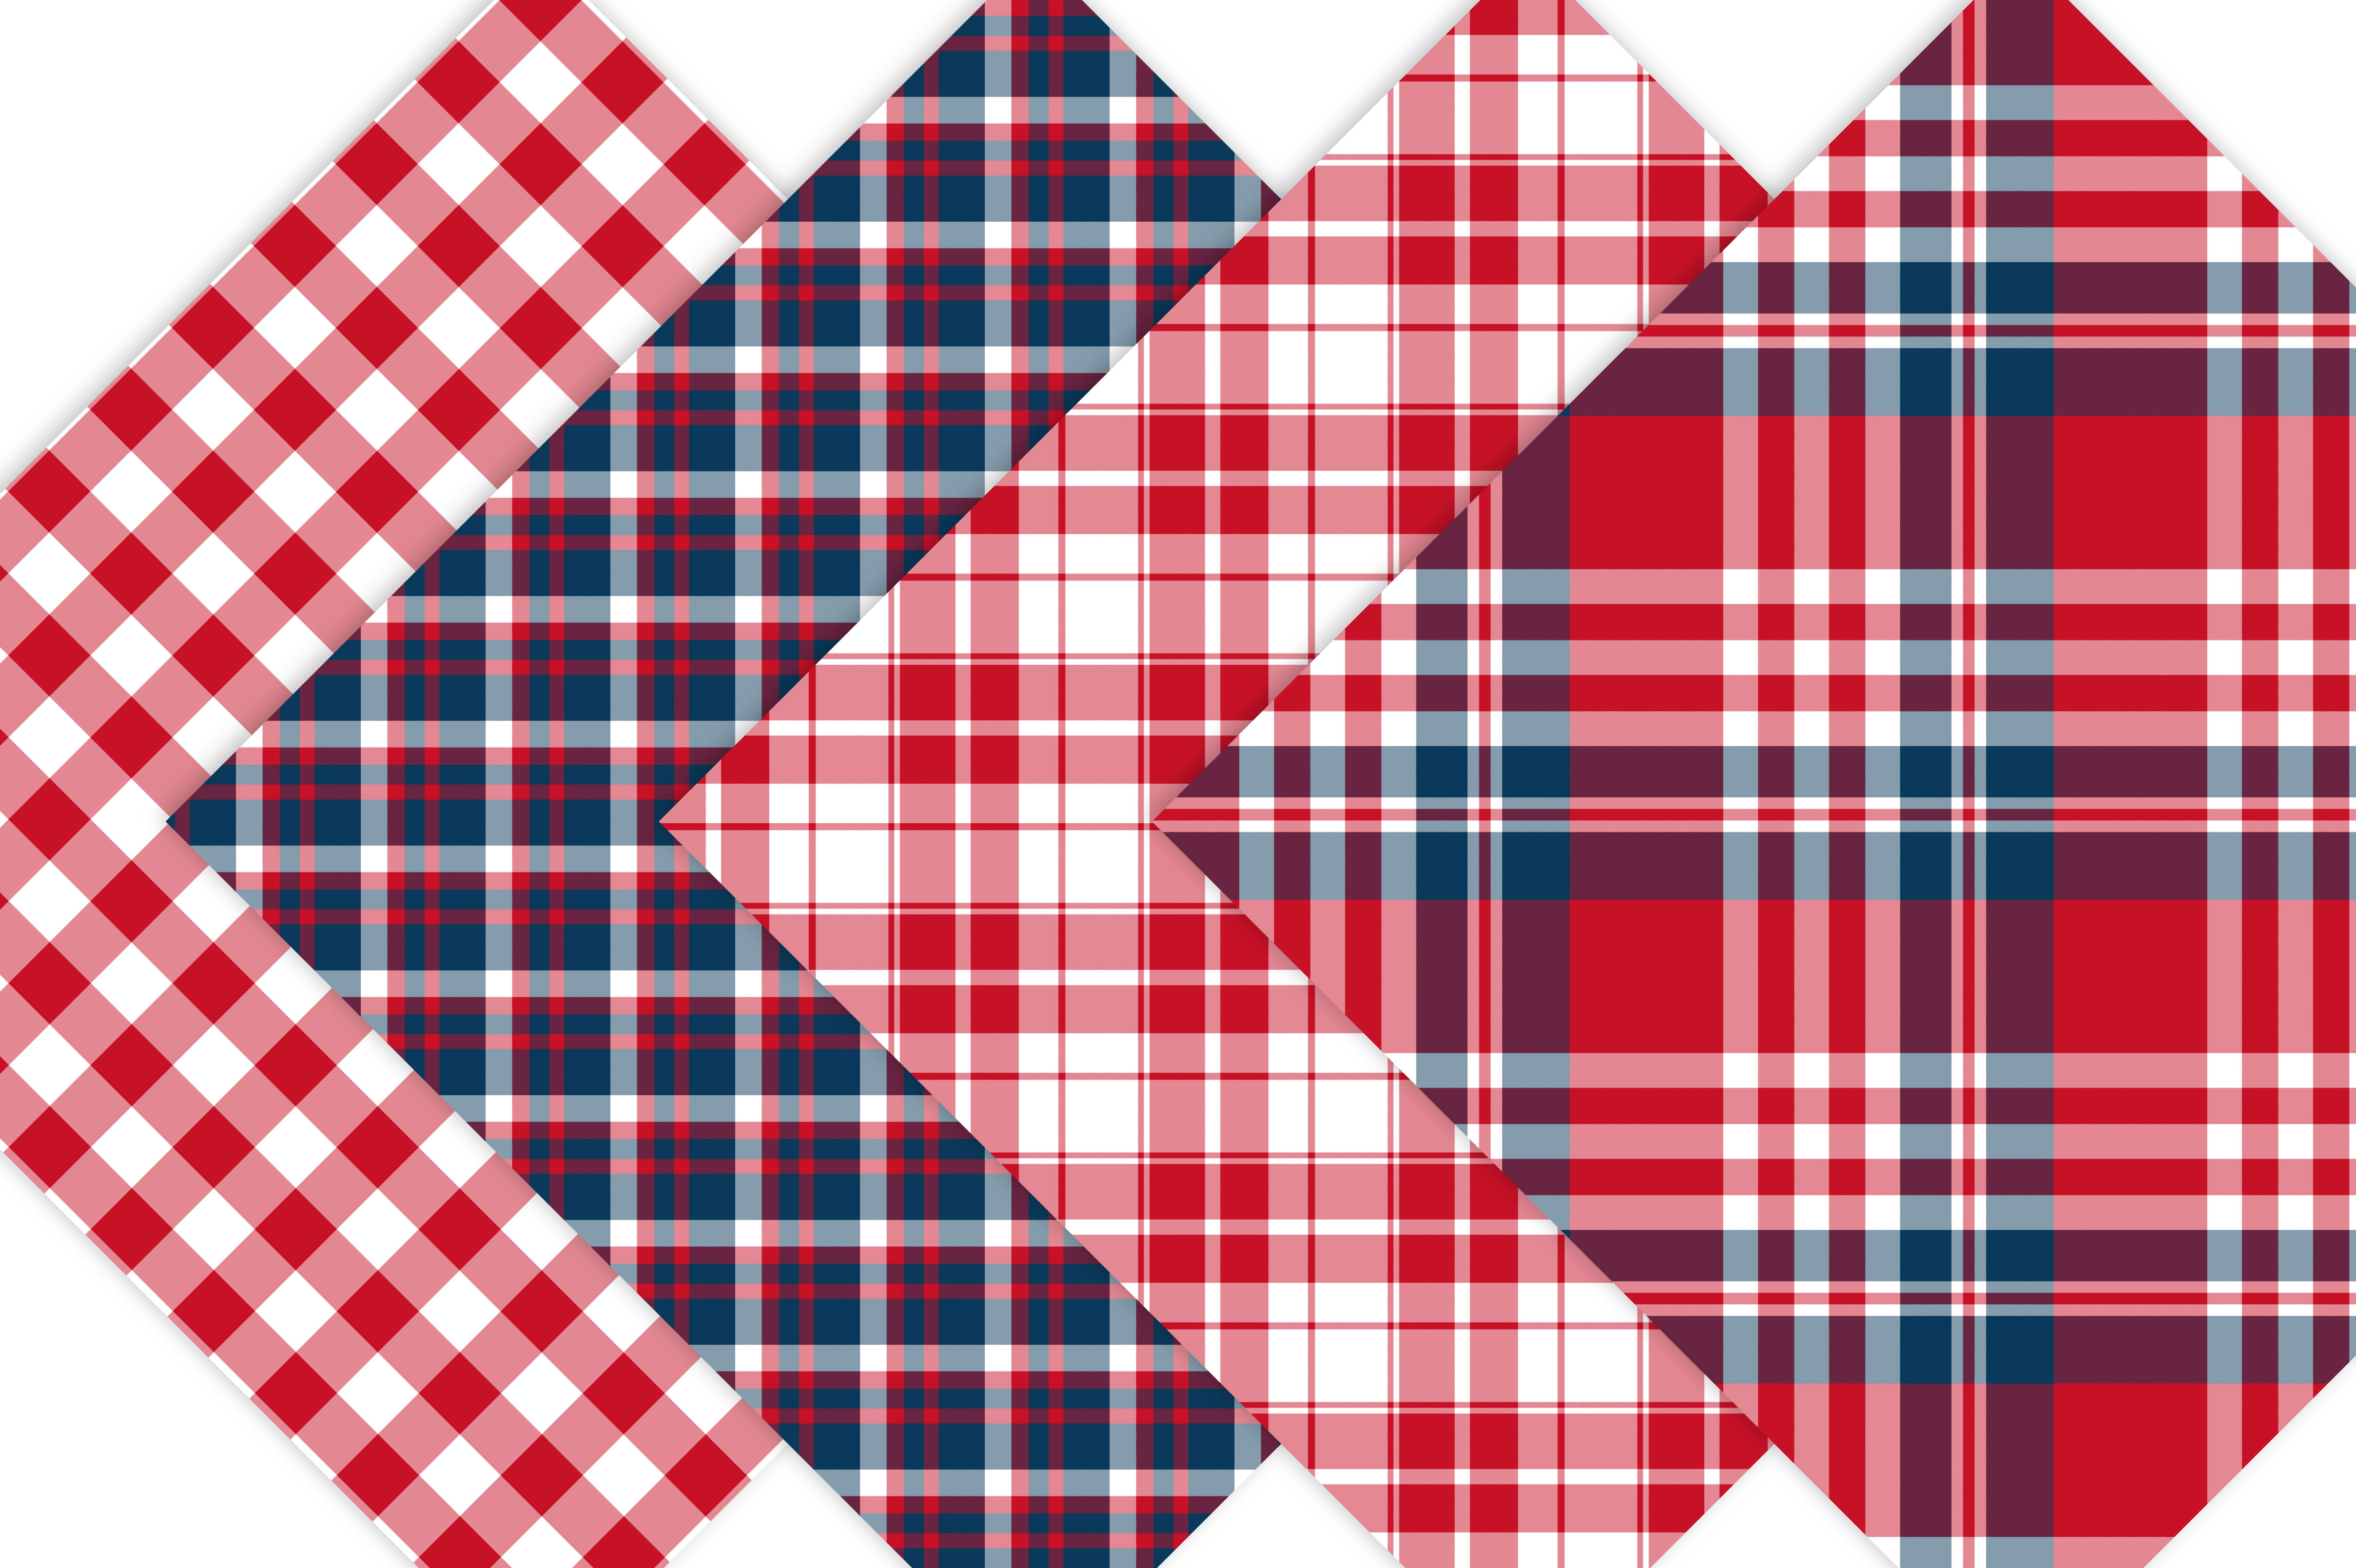 Red White and Blue Plaid Patterns (41369) | Backgrounds ...